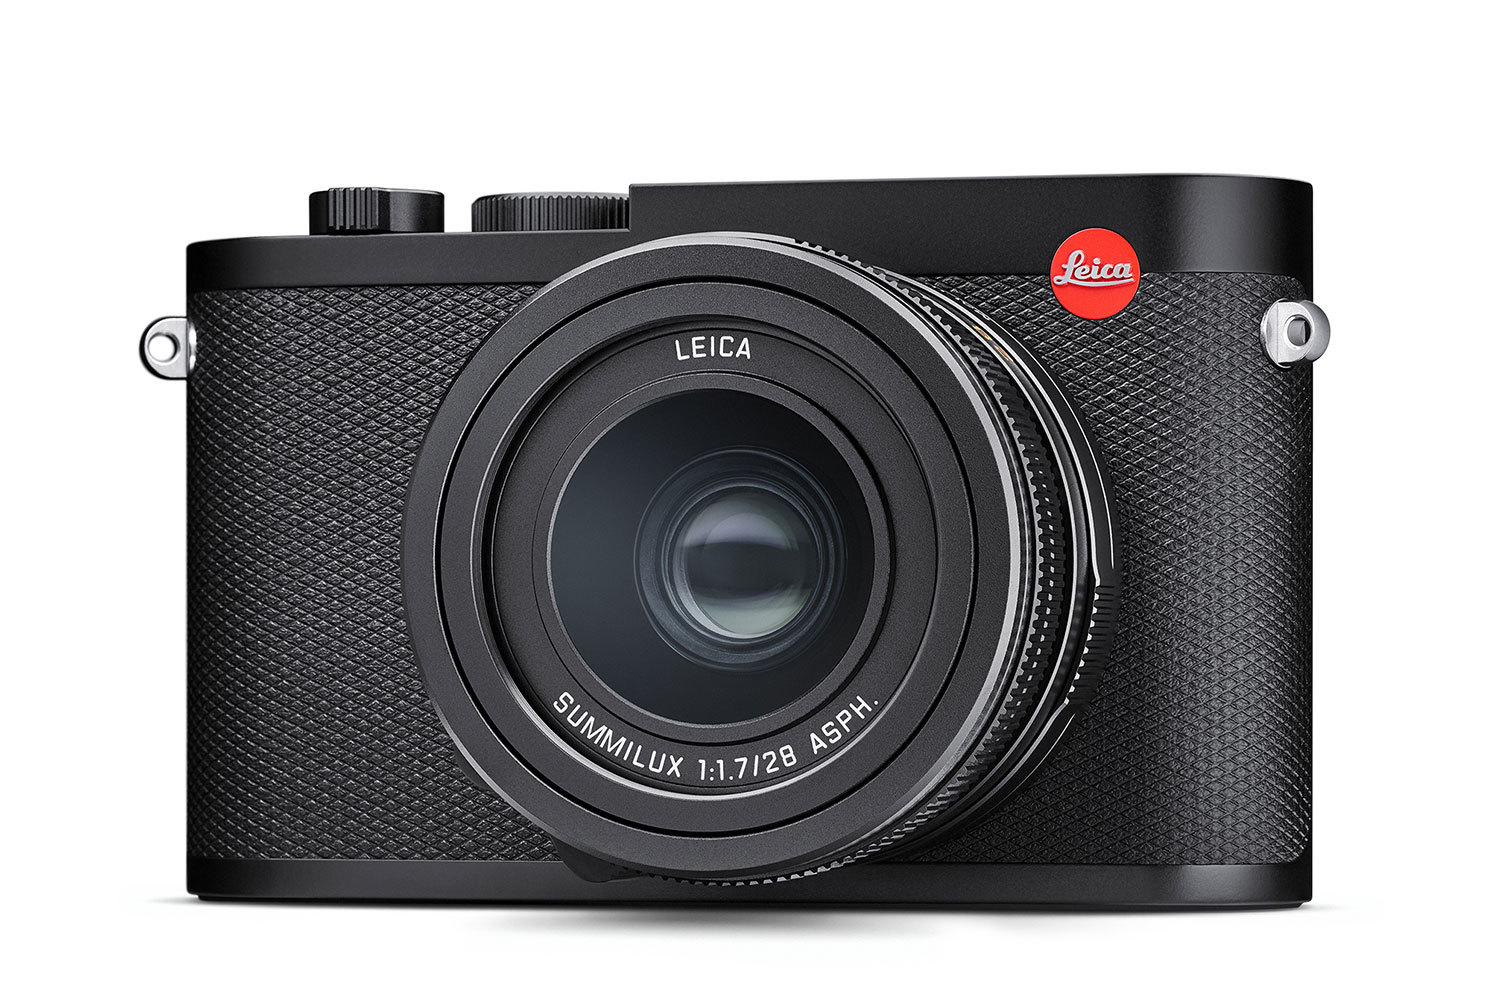 01_Leica_Q2_Totale_front_LoRes_sRGB.jpg